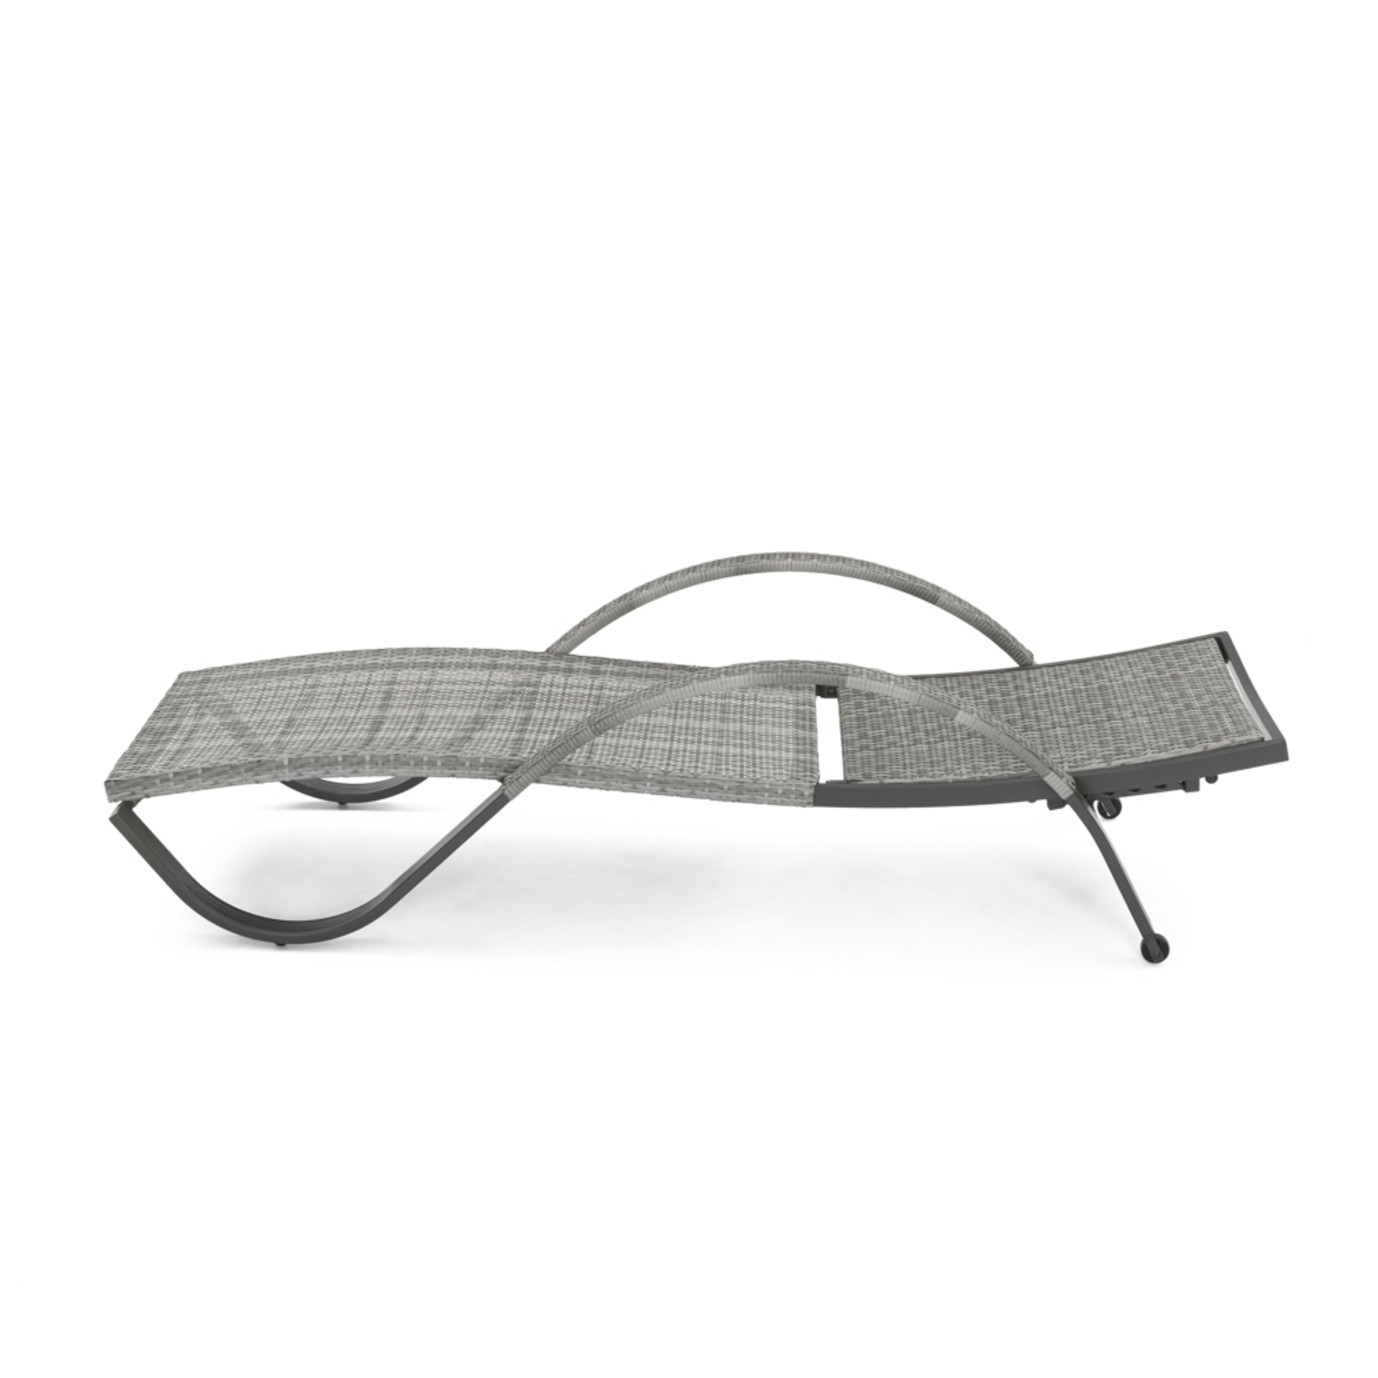 Cannes™ Chaise Lounges with Cushions - Navy Blue